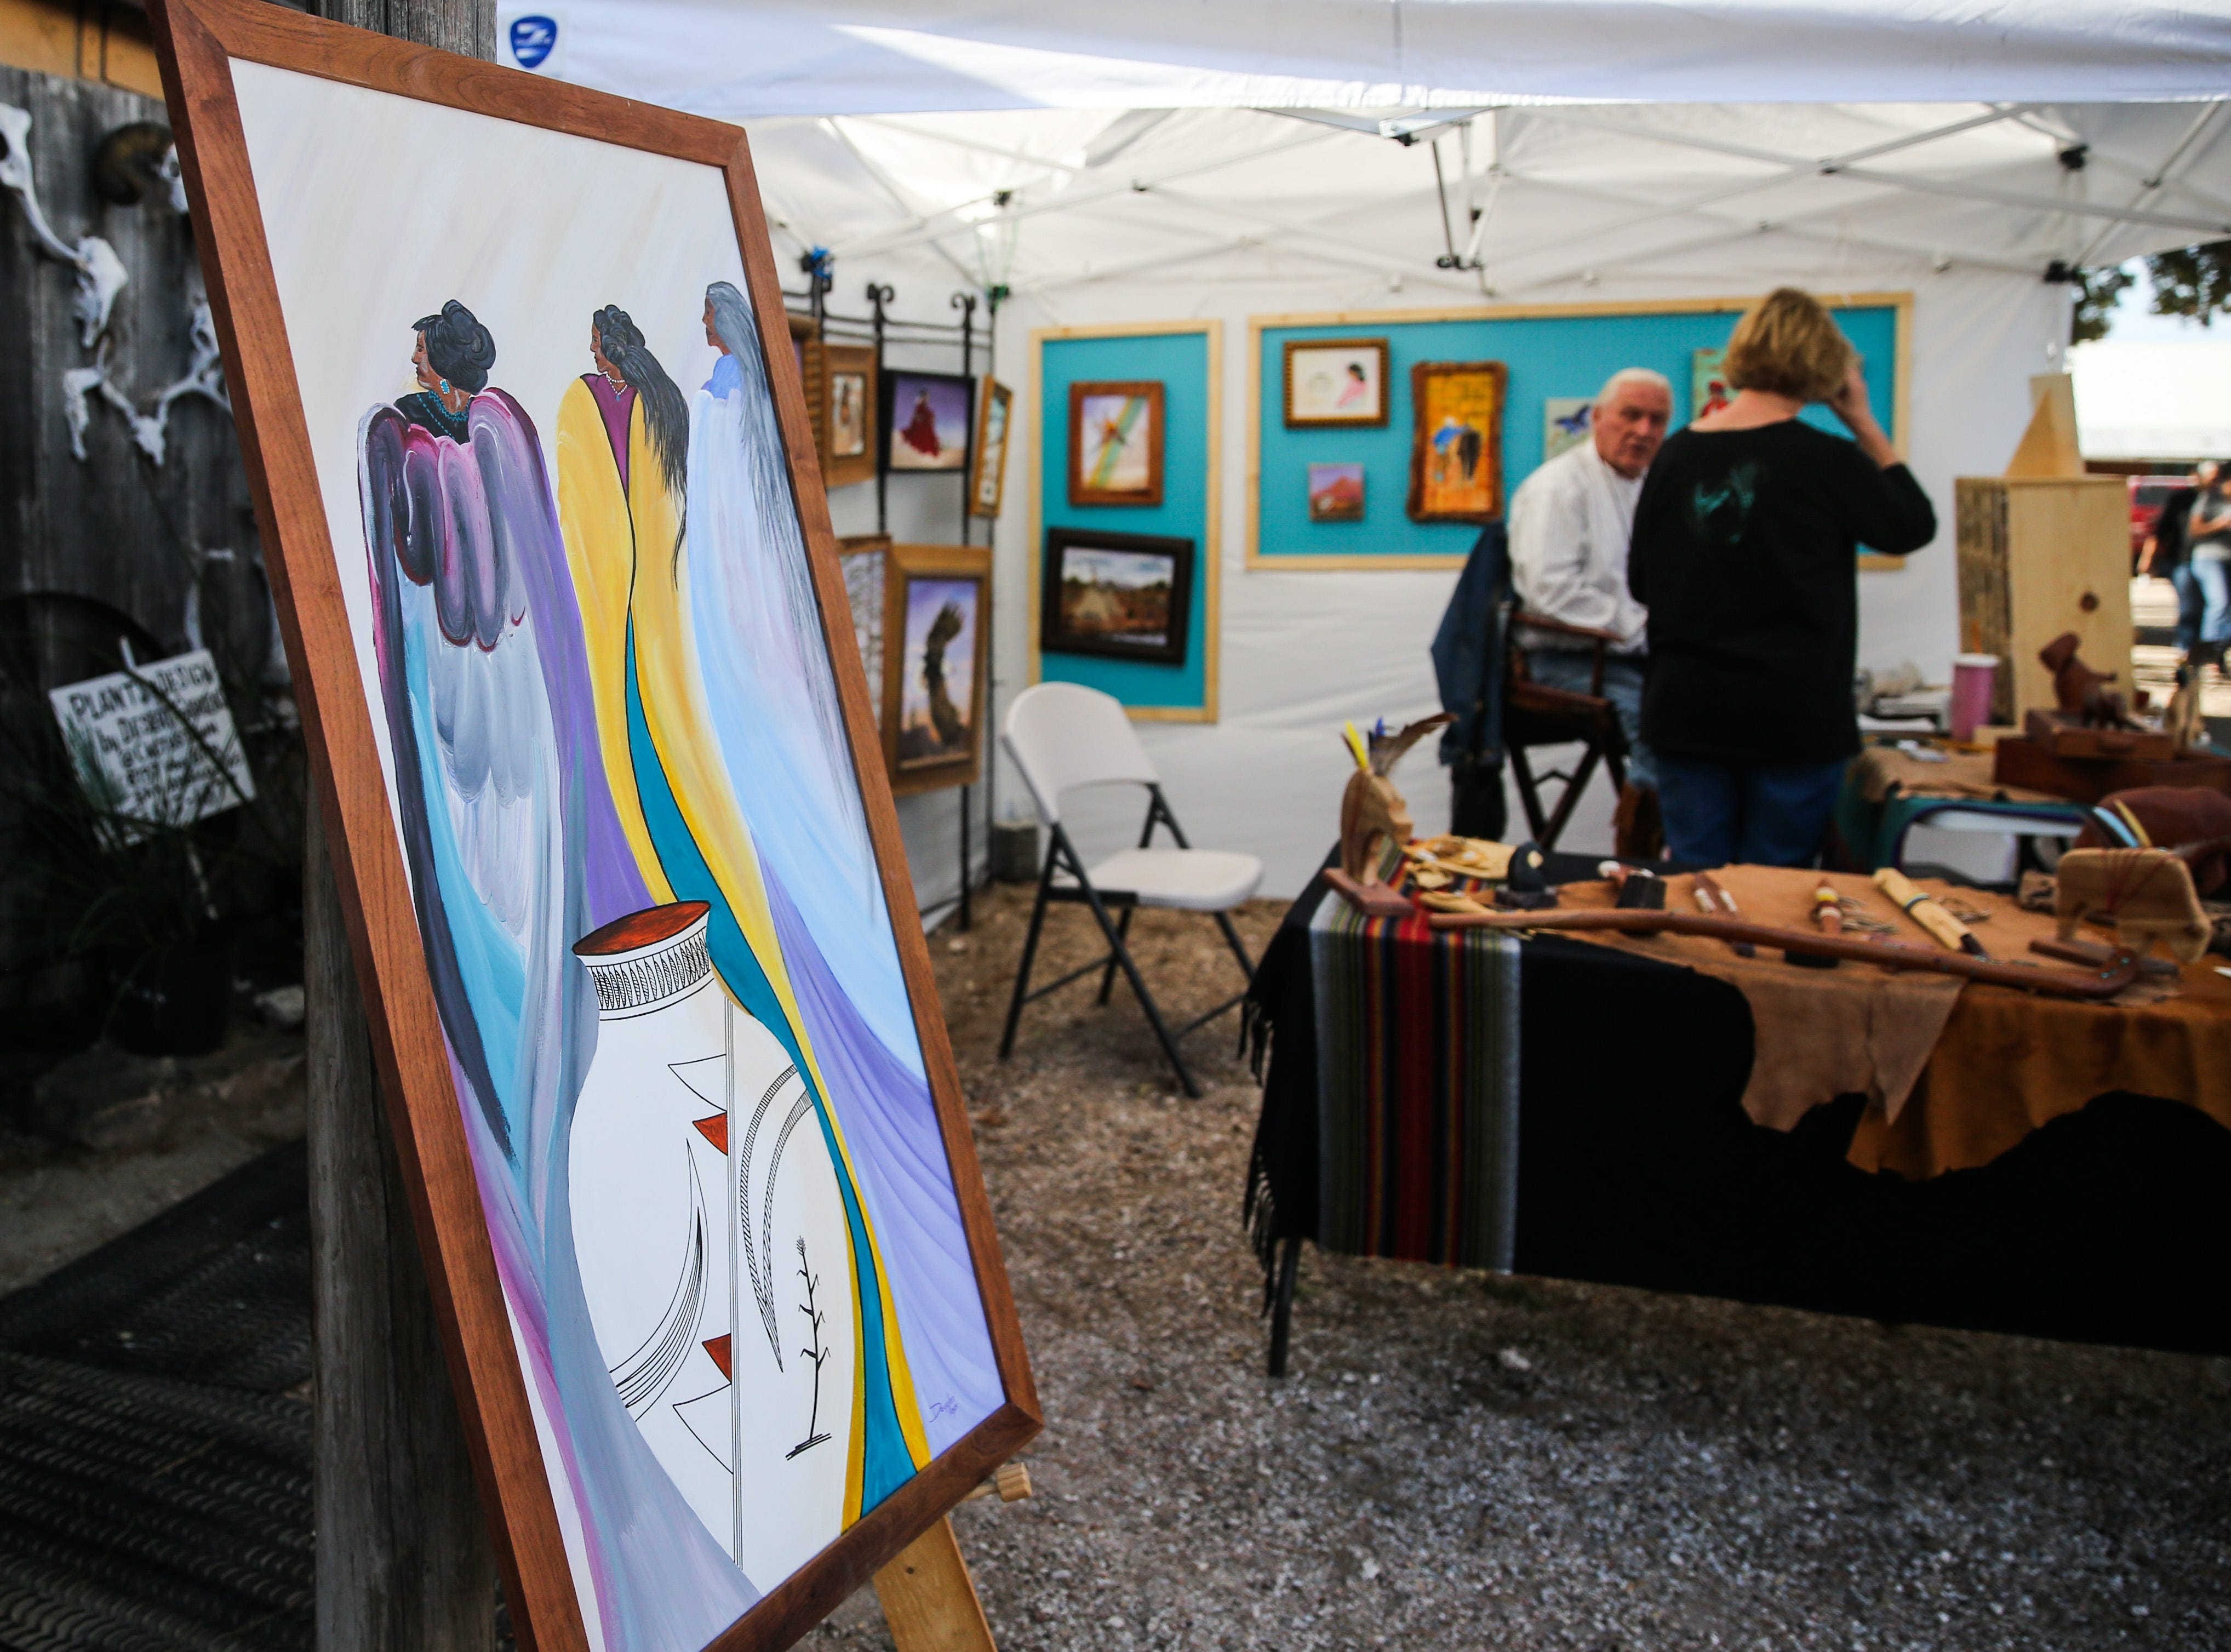 Paintings are on display at a booth during the Thanksgiving Open House Friday, Nov. 23, 2018, at the Chicken Farm Art Center.